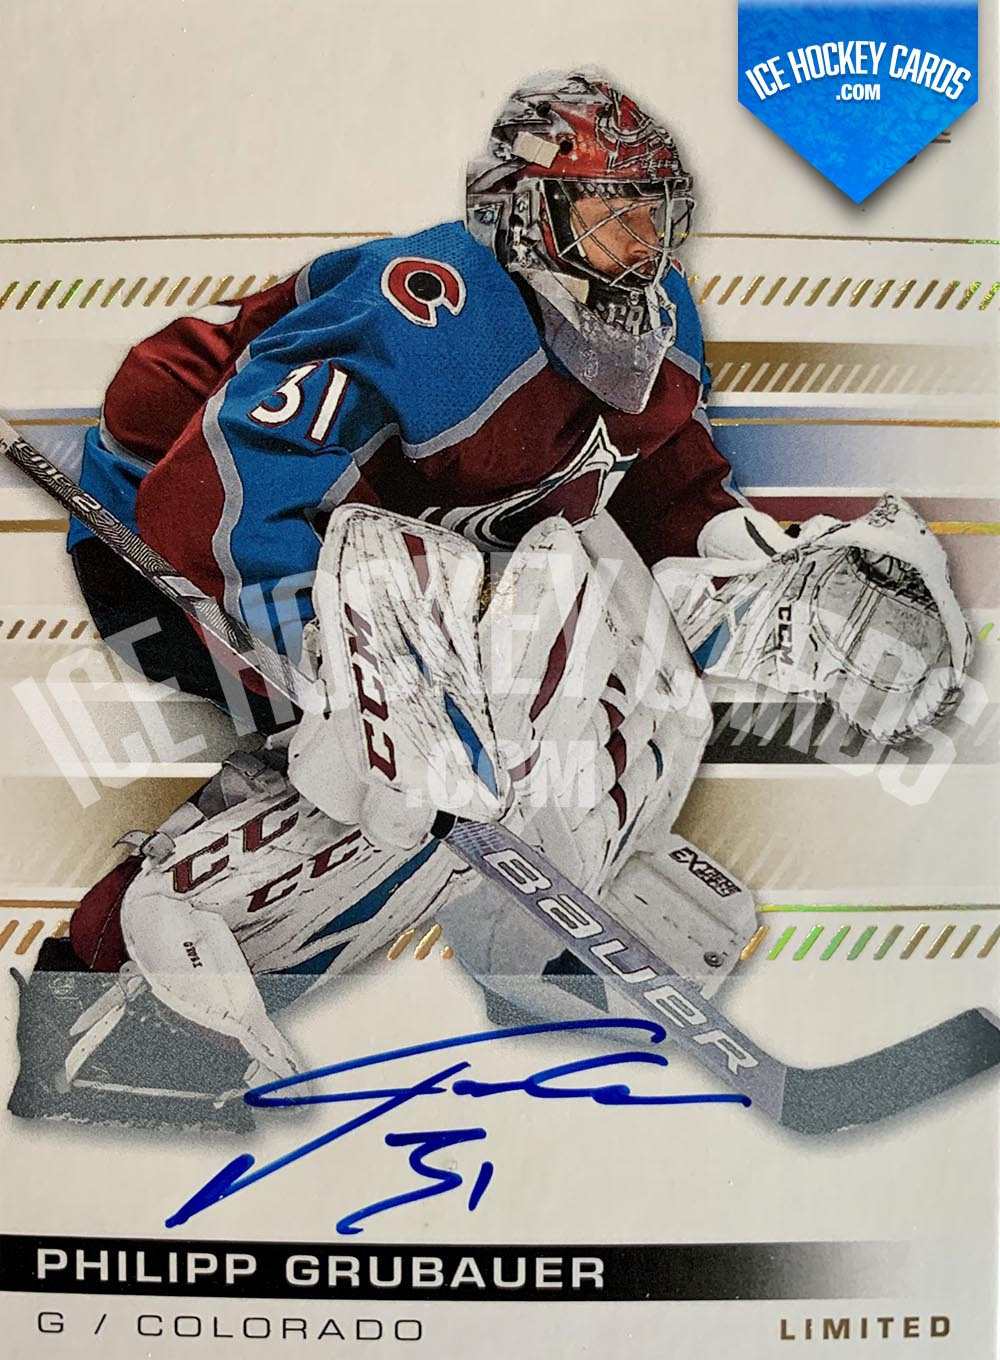 Upper Deck - SP Authentic 2019-20 - Philipp Grubauer Limited Autograph